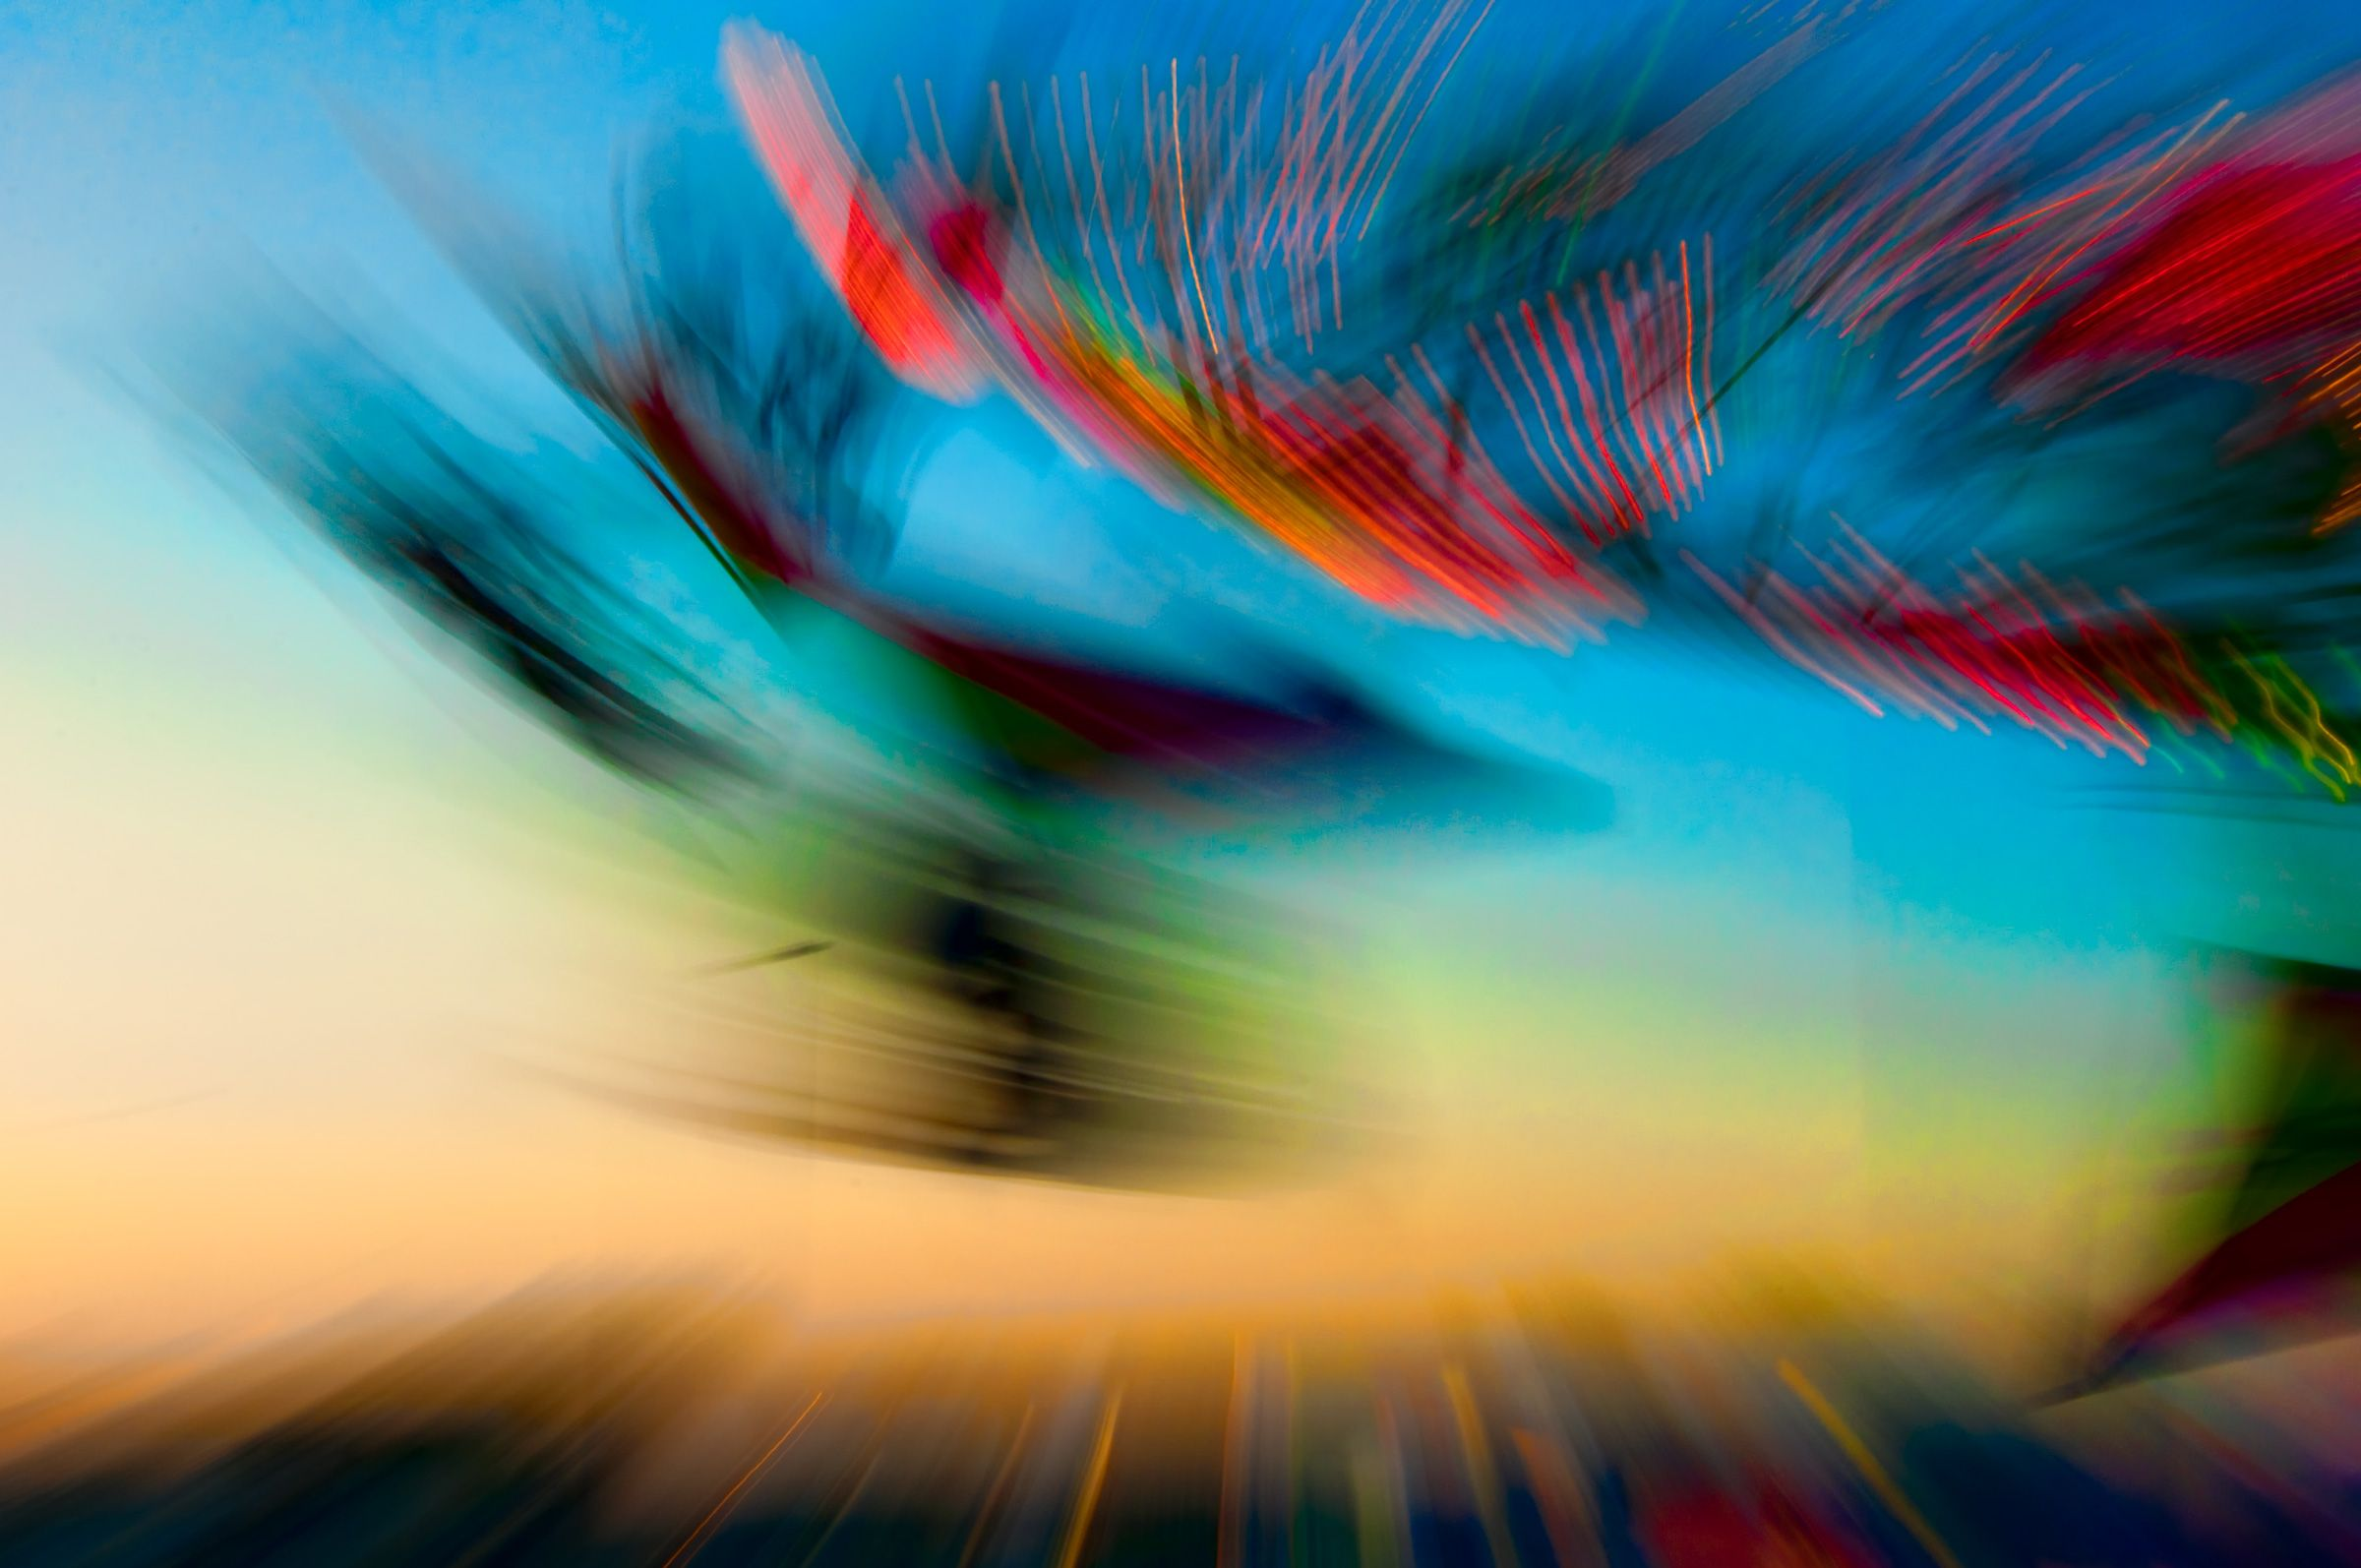 Abstract Photography - wallpaper. | Abstract Photography ...